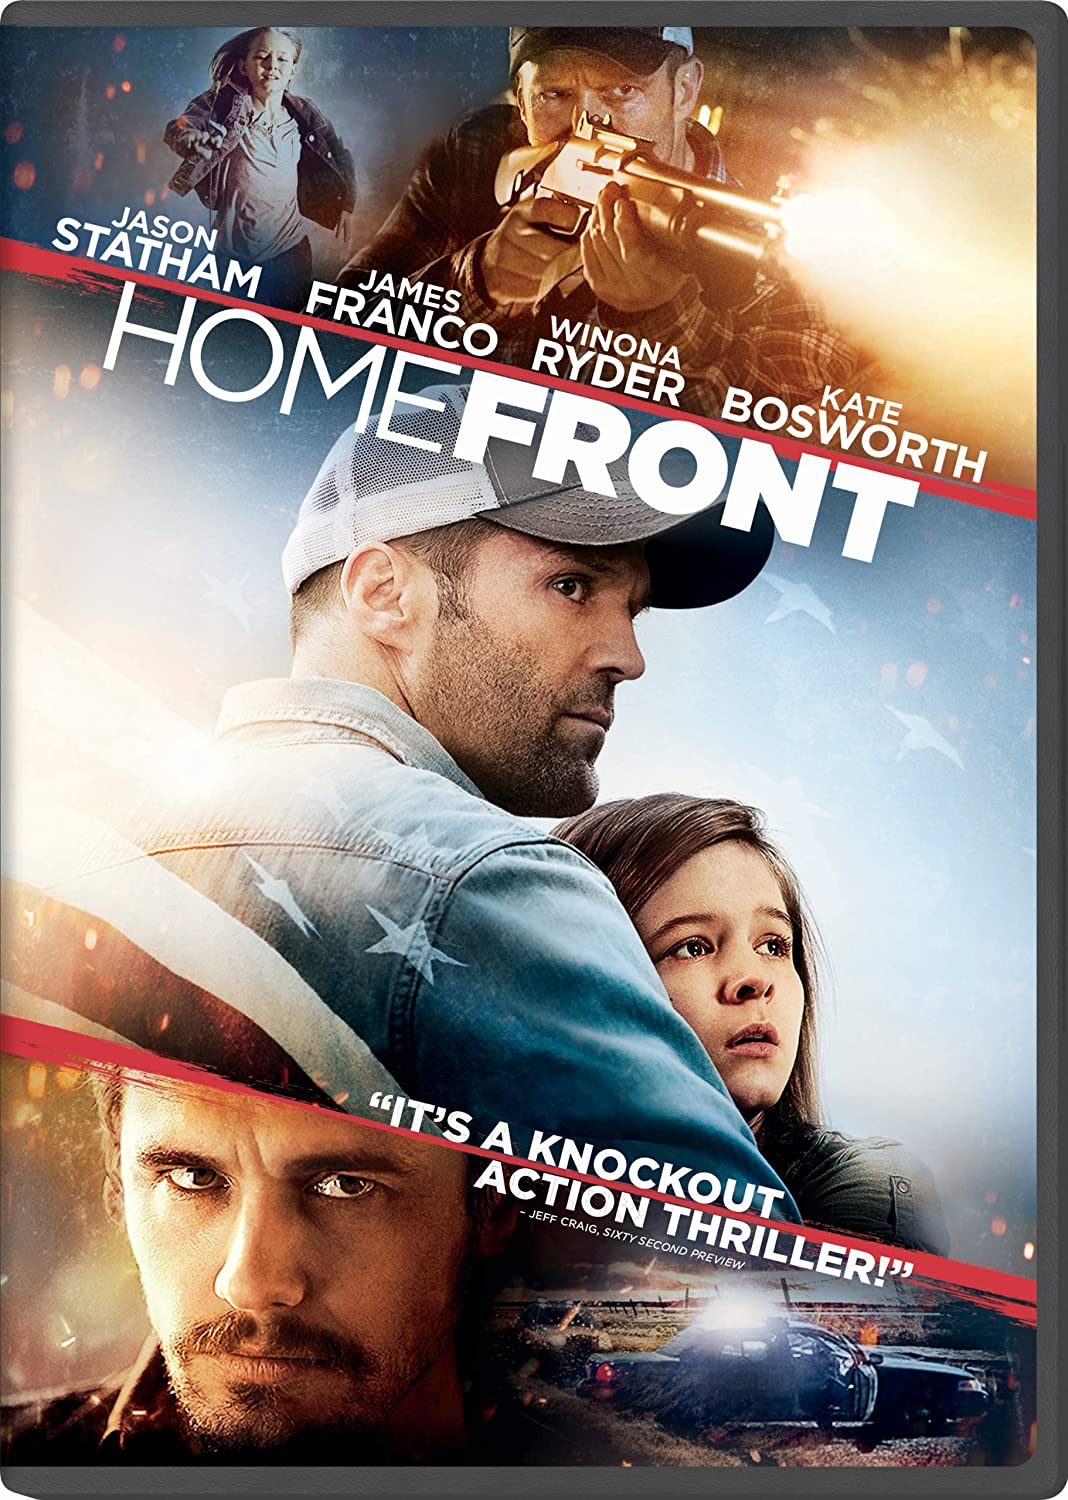 Amazon Com Homefront Jason Statham James Franco Winona Ryder Kate Bosworth Rachelle Lefevre Frank Grillo Clancy Brown Izabela Vidovic Marcus Hester Gary Fleder John Thompson Kevin King Templeton Sylvester Stallone Sylvester Stallone Movies Check out some of the imdb editors' favorites movies and shows to round out your watchlist. homefront jason statham james franco